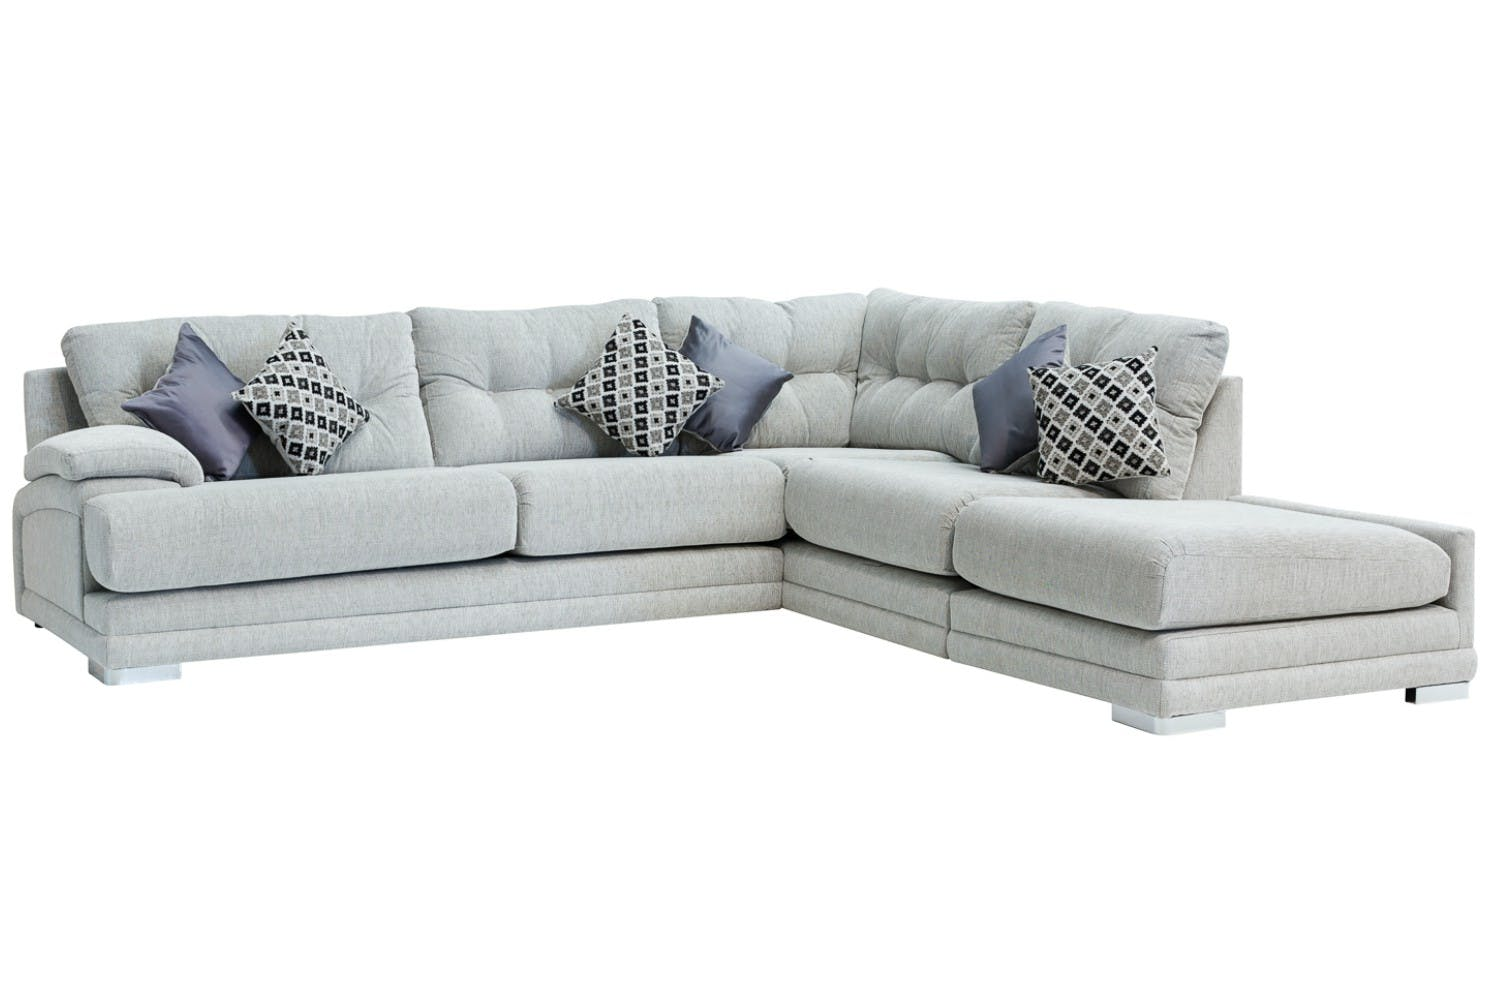 Phoebe corner sofa ireland for Corner loveseats